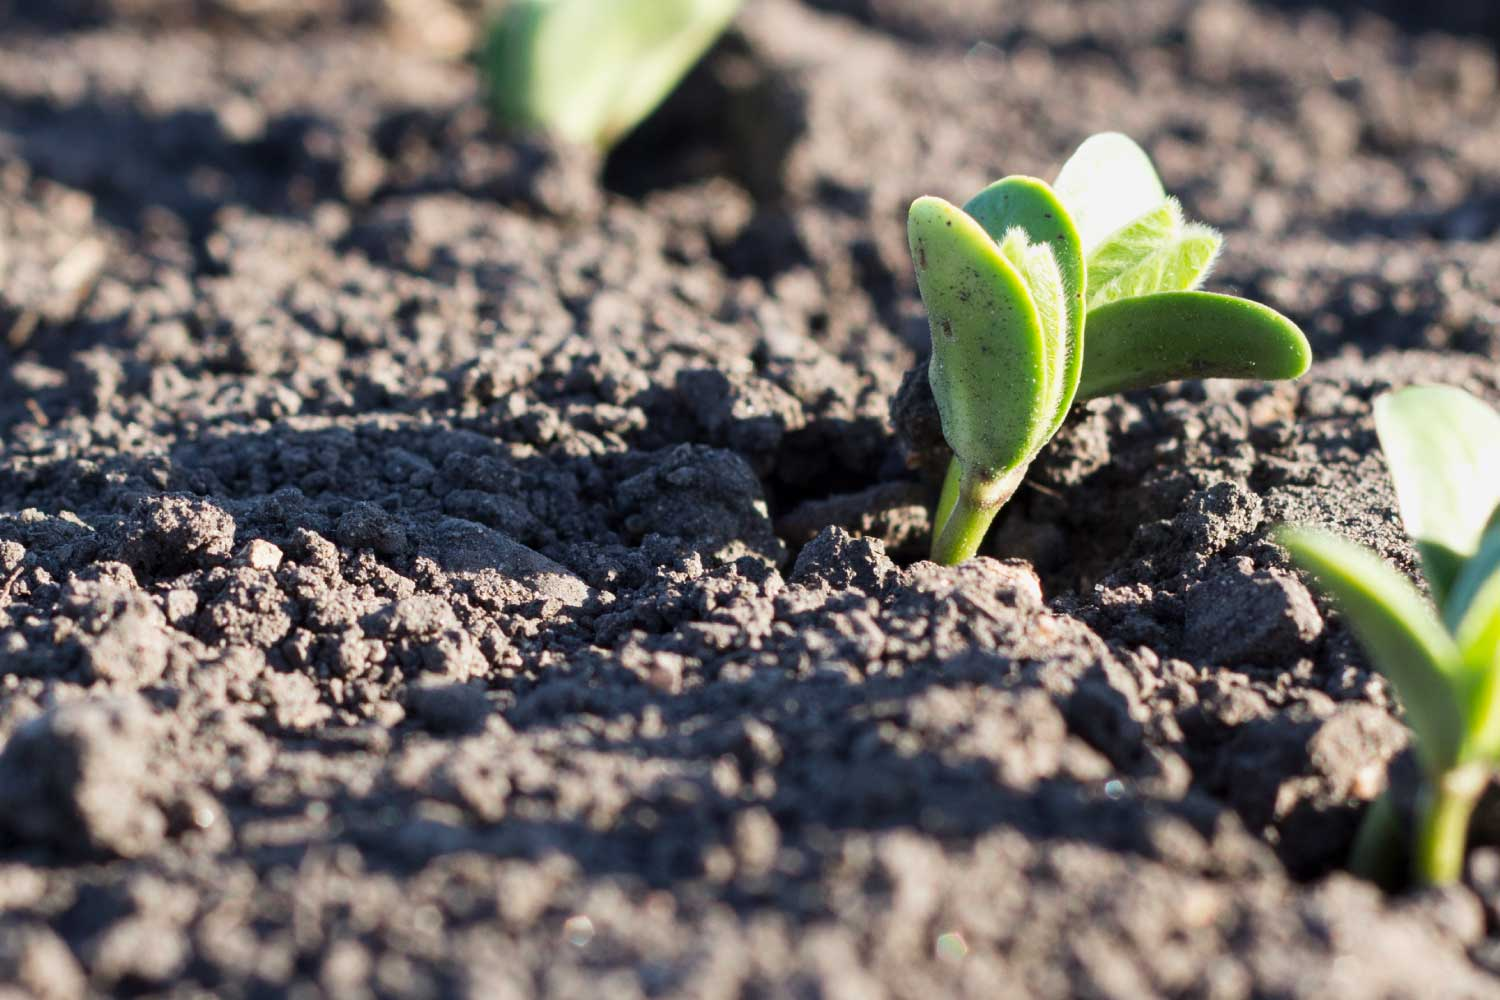 soybean plant emerging